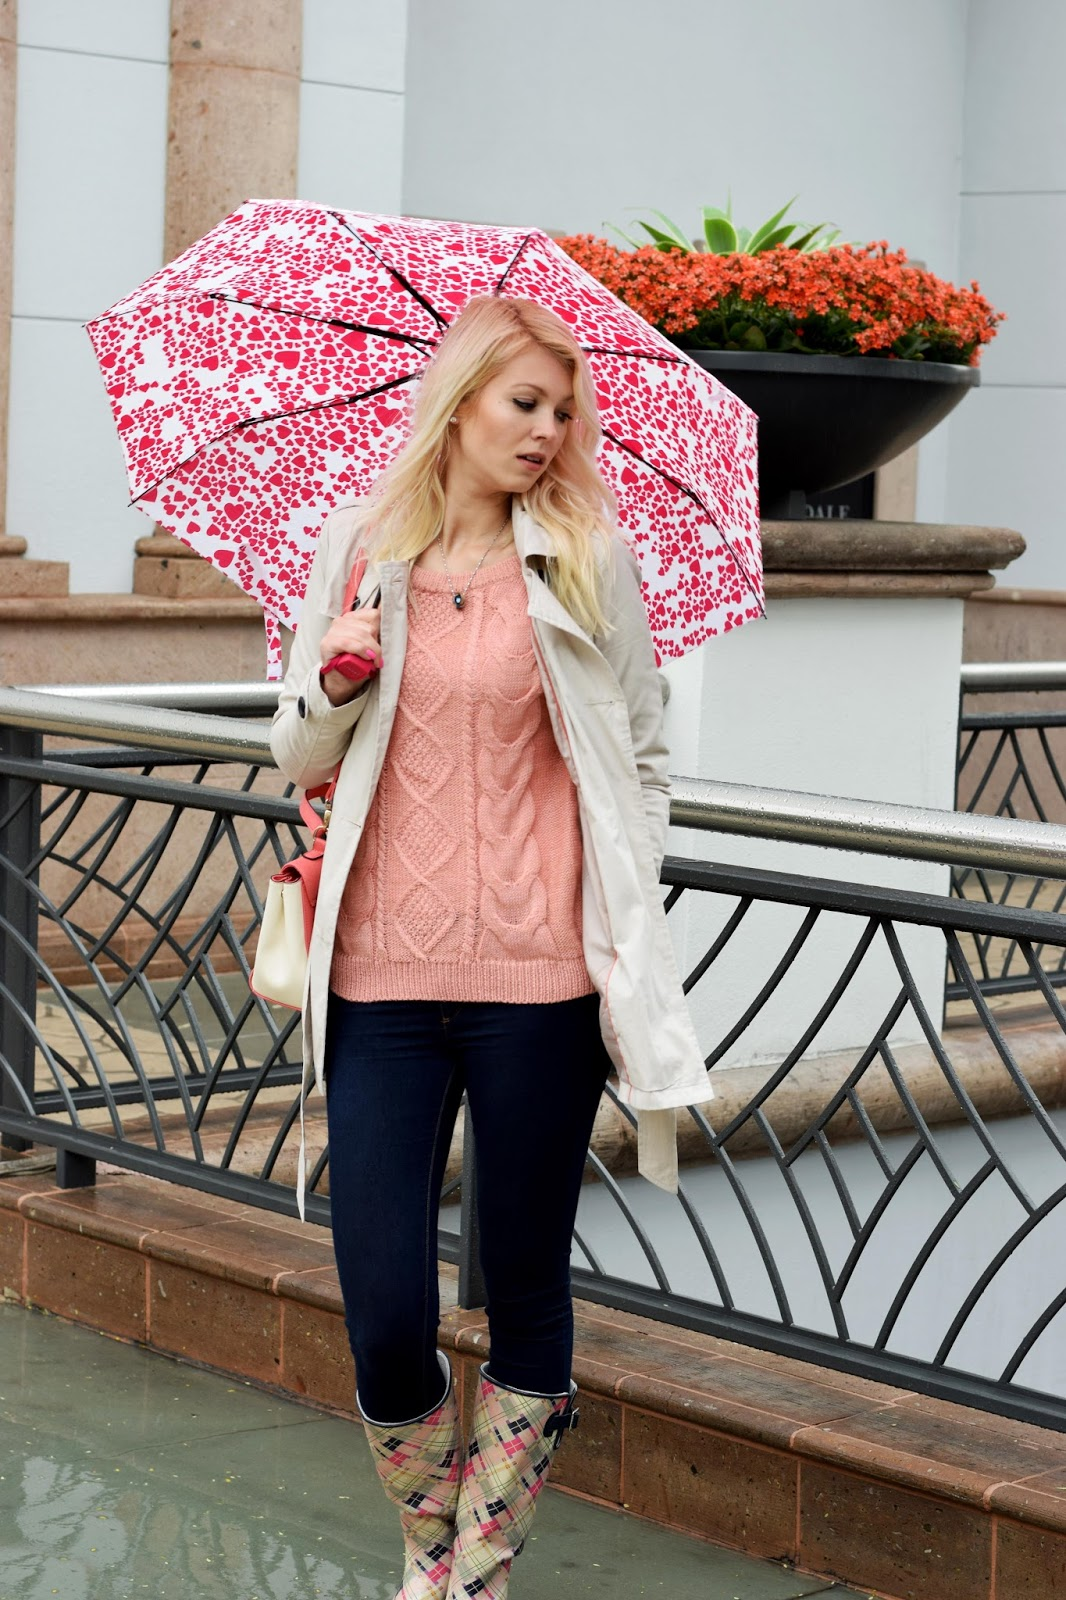 Romwe, knitted sweater, sweater, rainboots, color, colorful, heart umbrella, umbrella